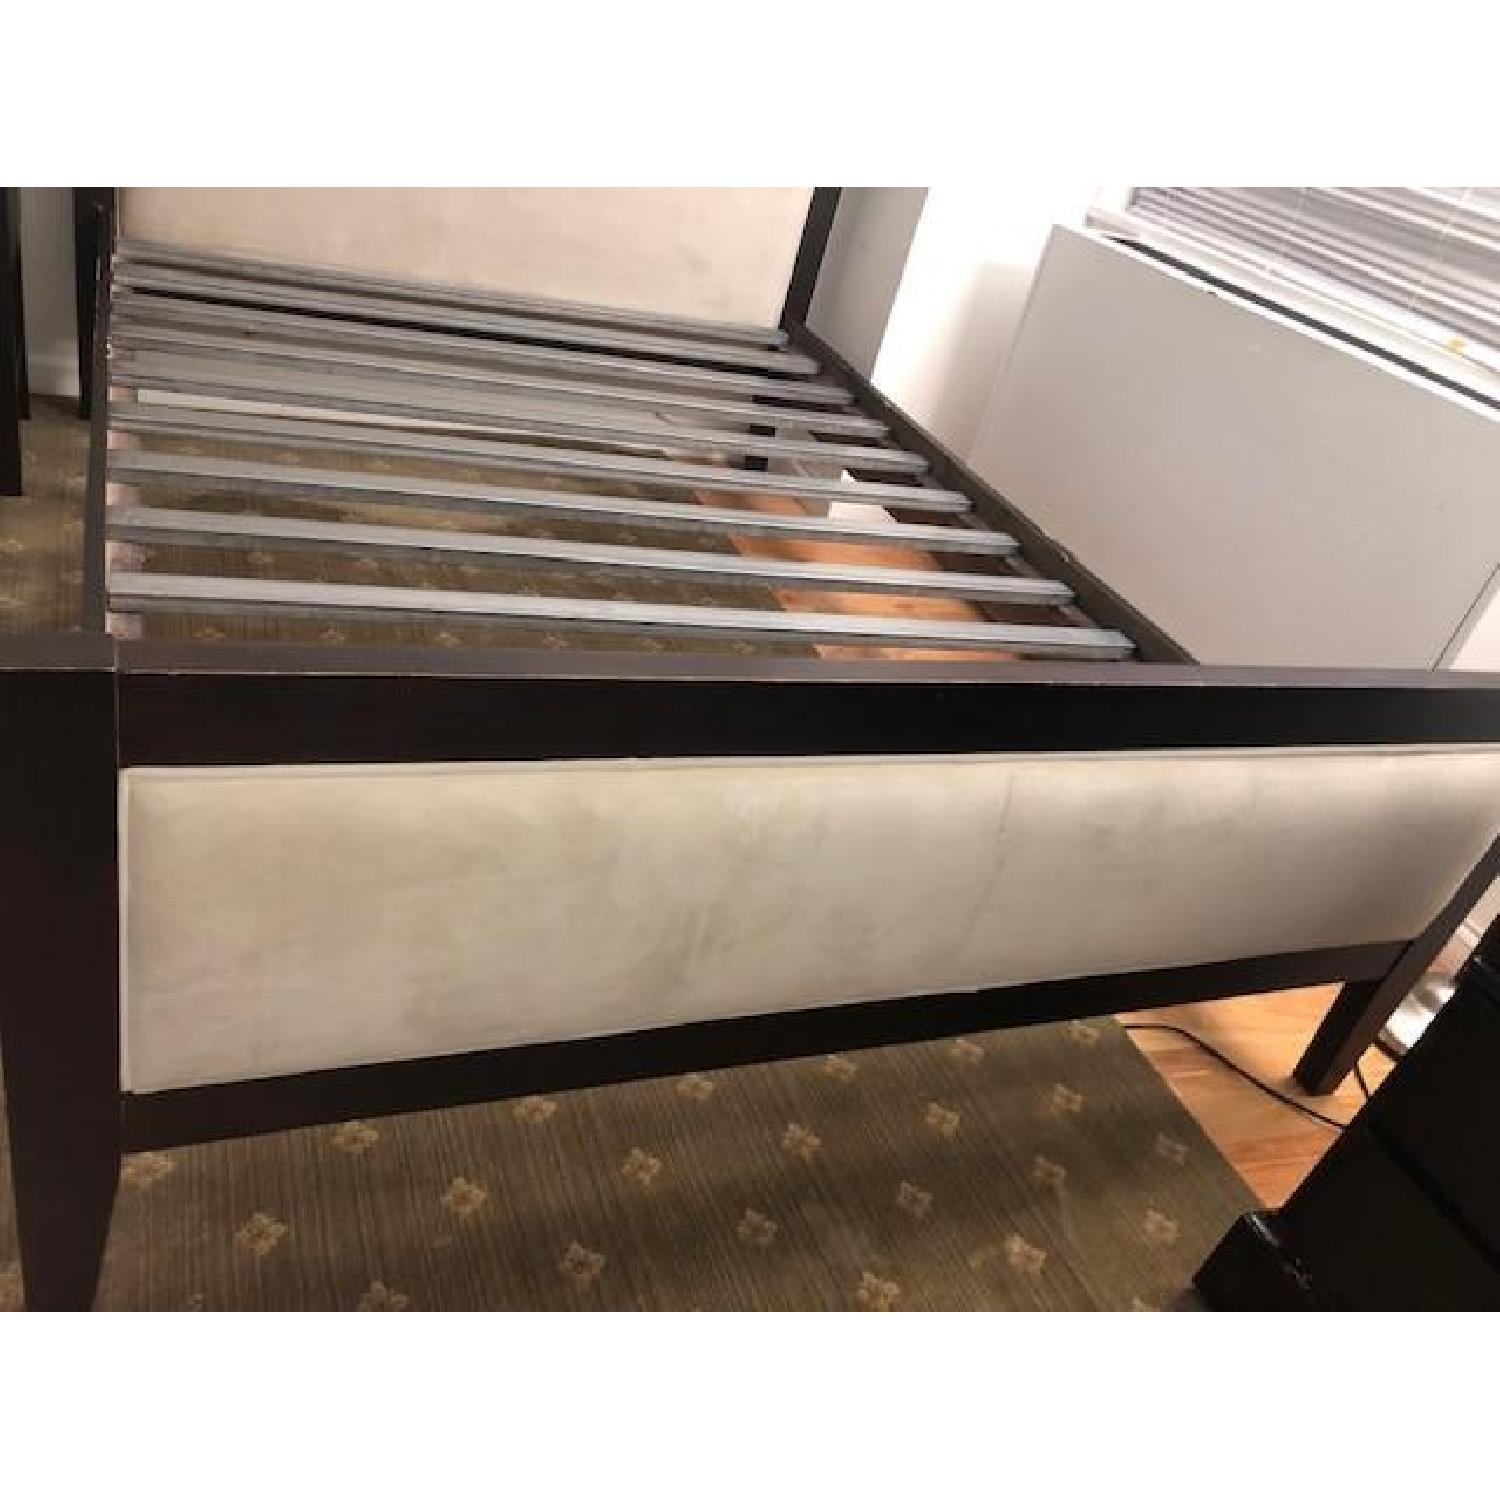 Room & Board Queen Bed w/ Upholstered Headboard & Footboard - image-3